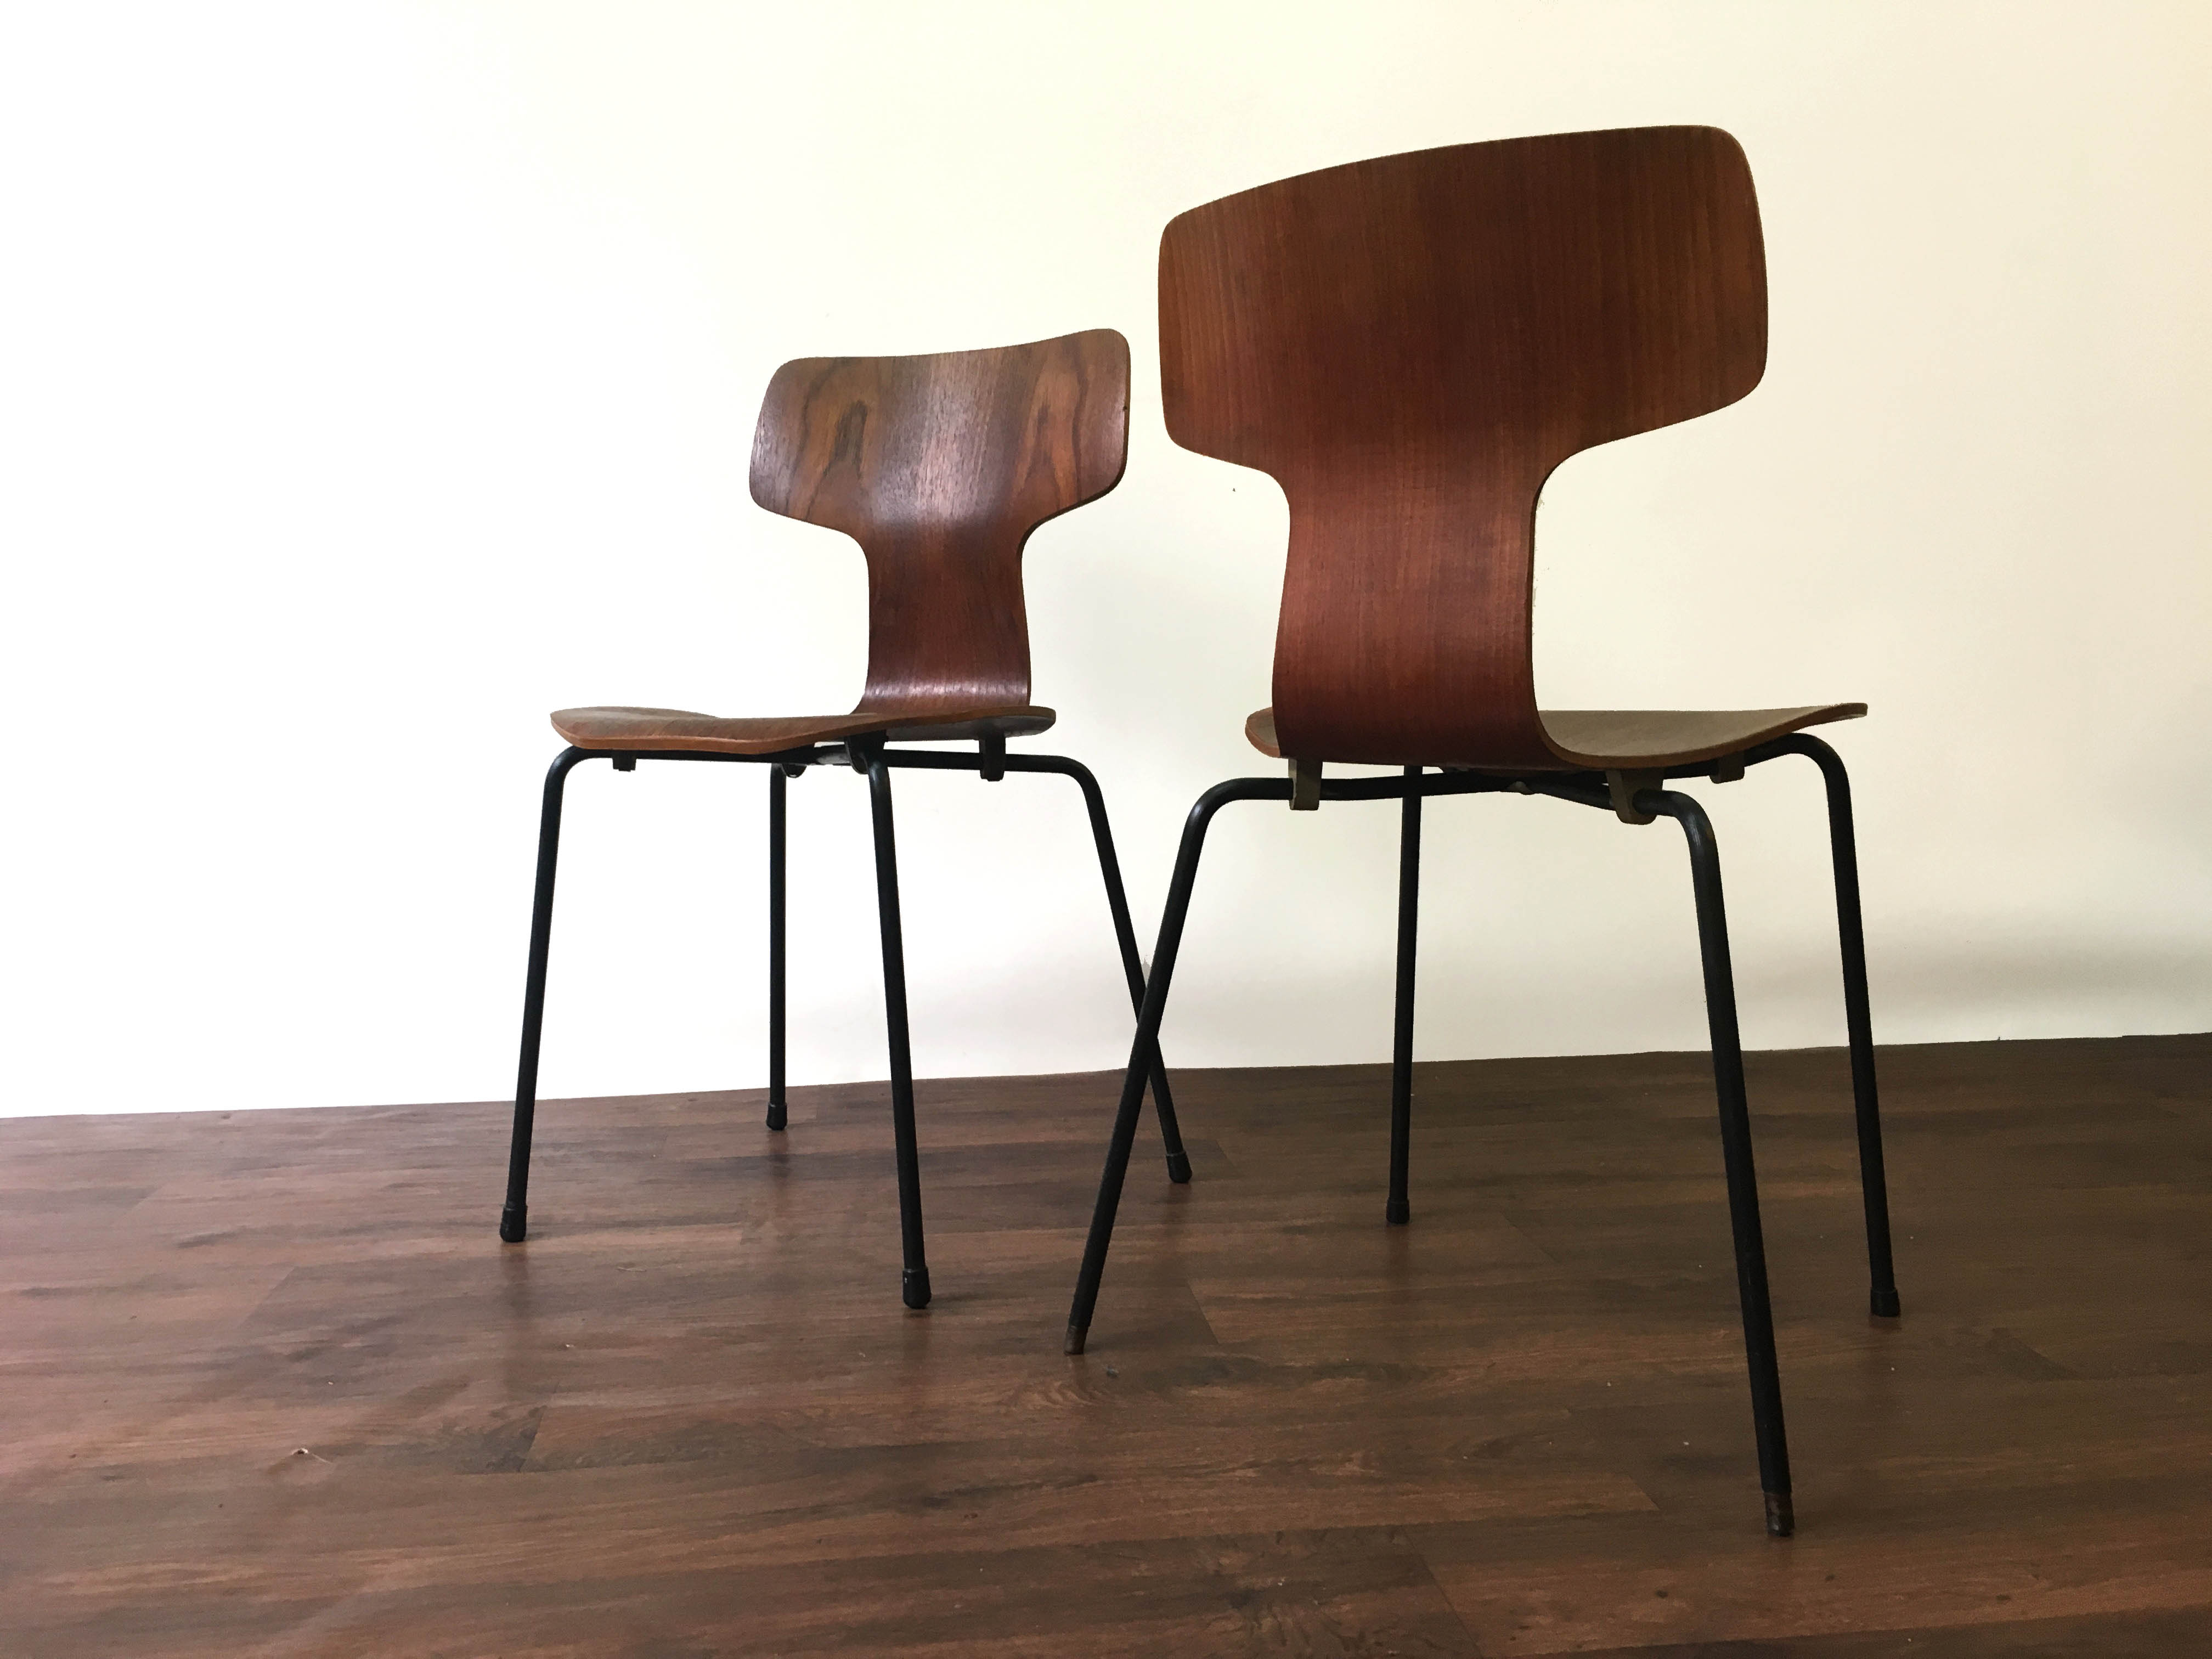 3103 chairs